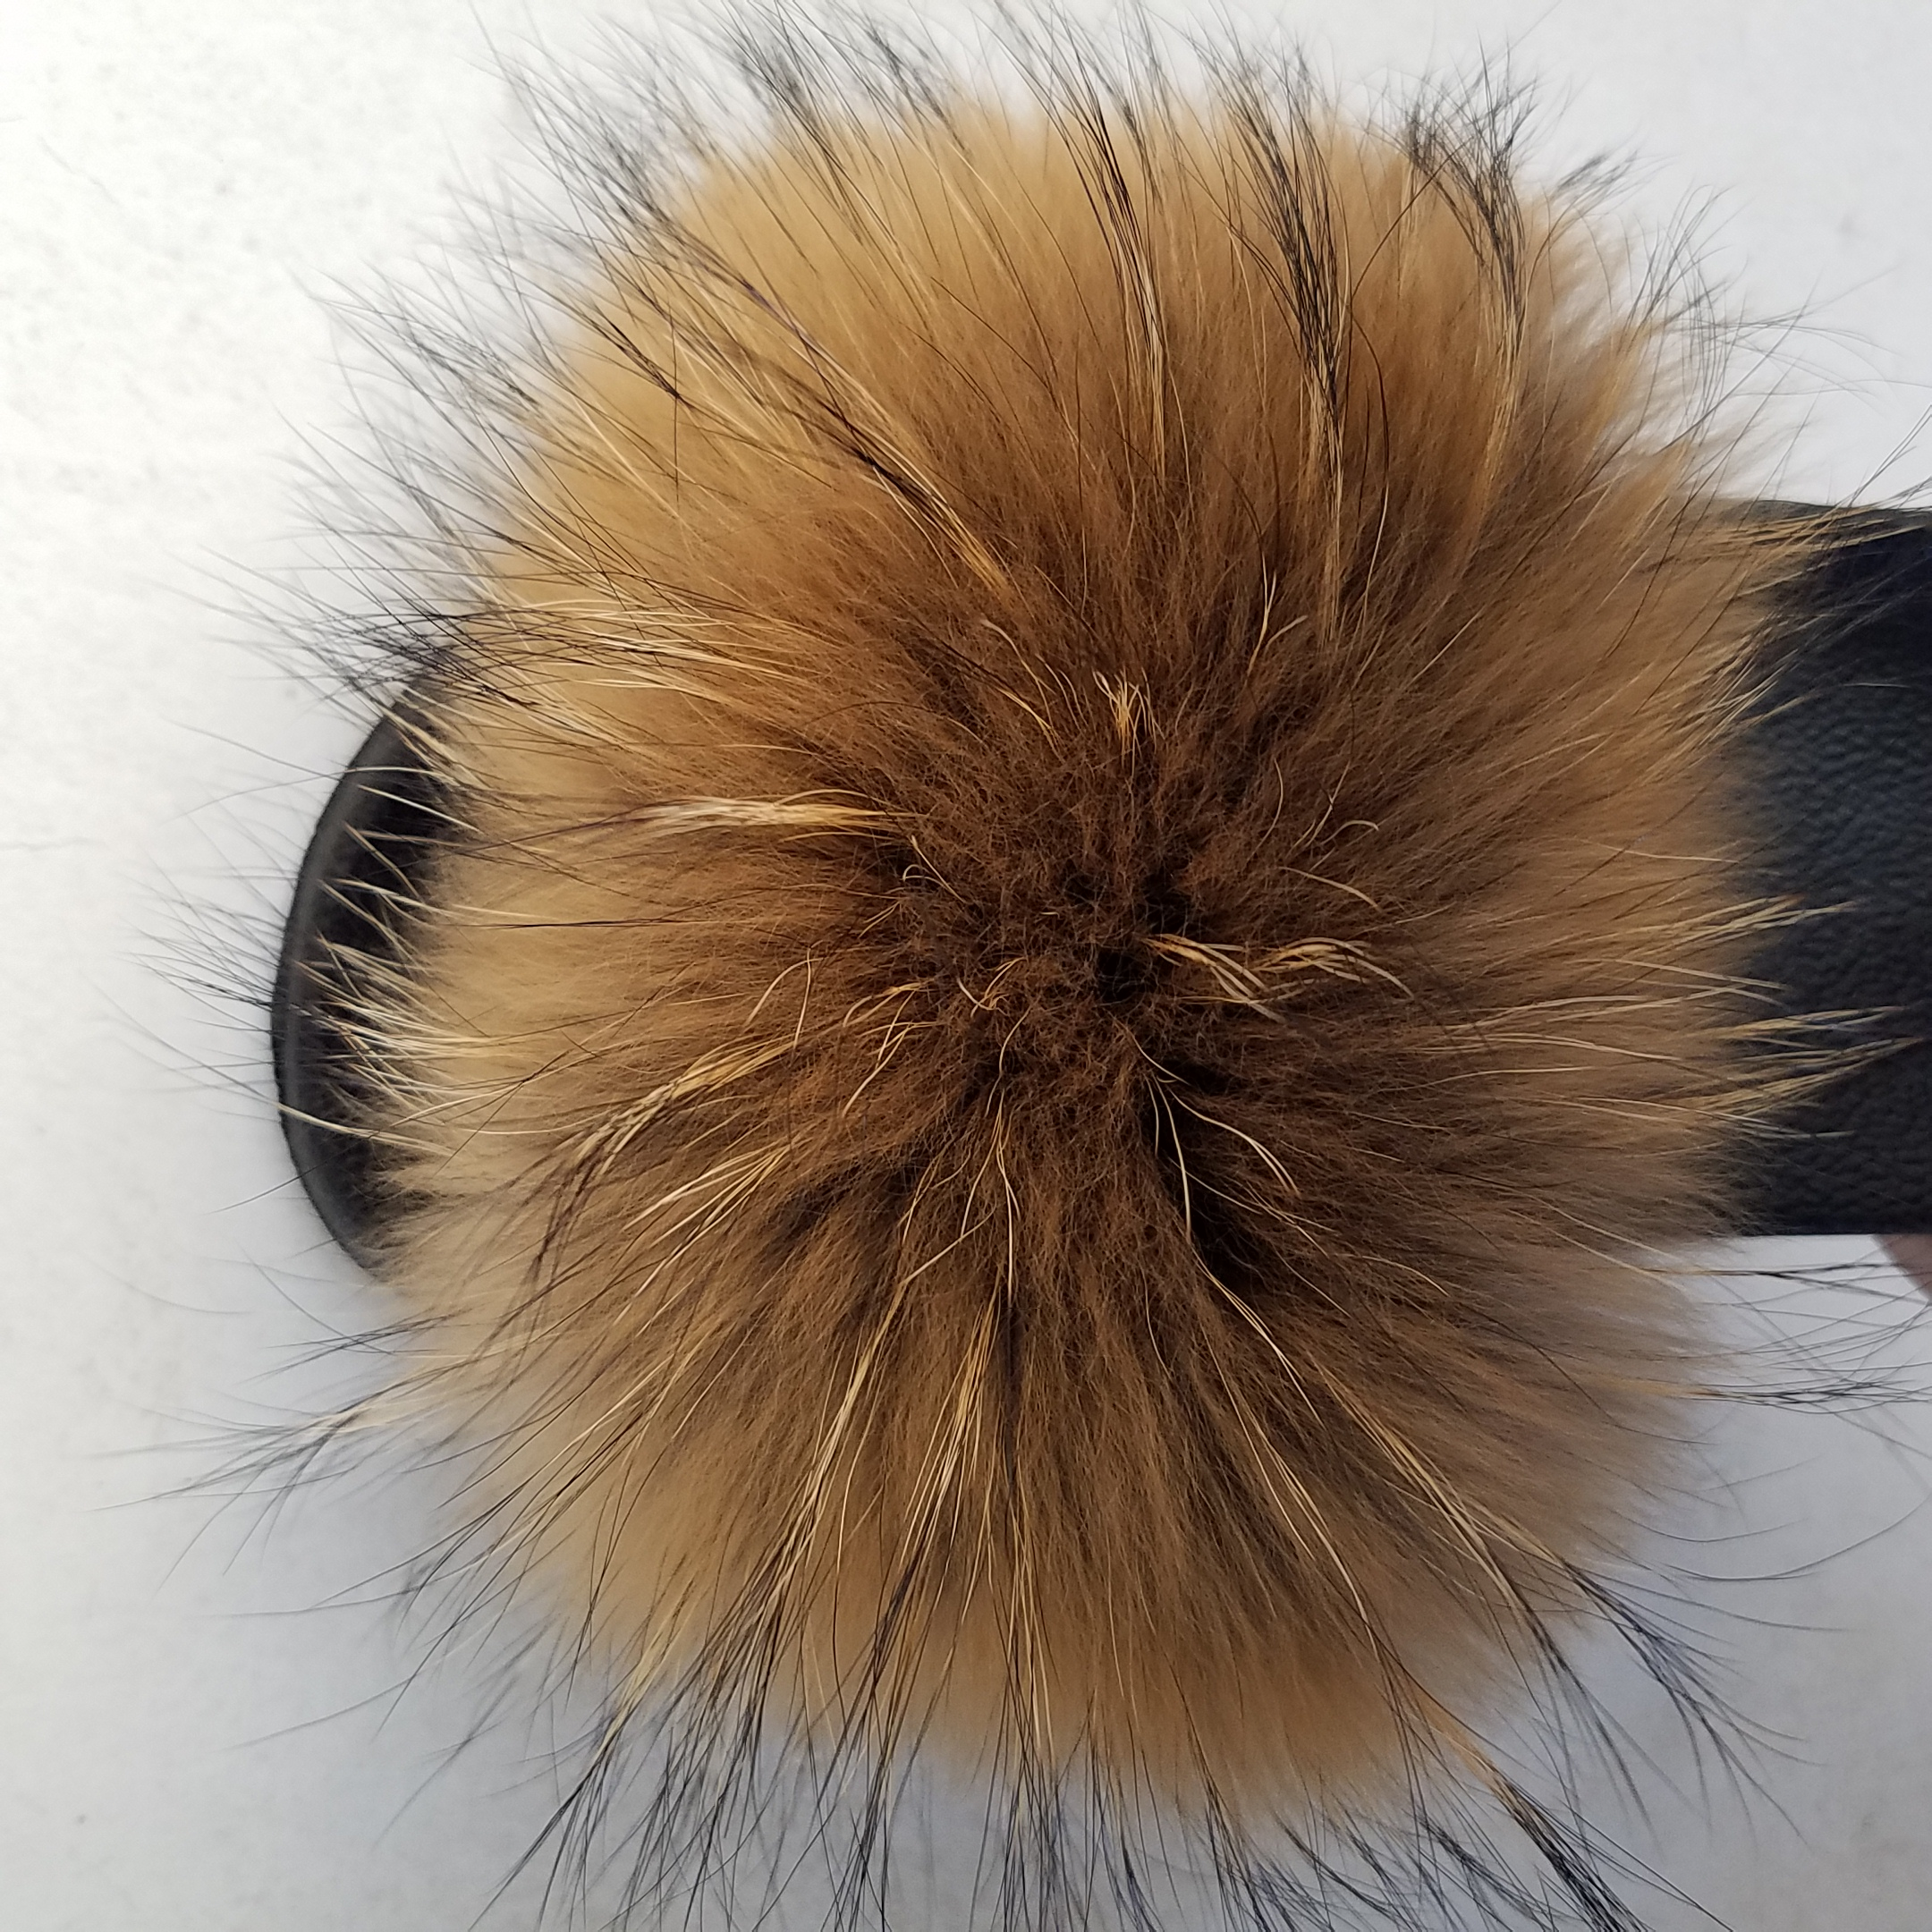 Real Fur Slippers Women Fox Wholesale Jamacia Fluffy Sliders Comfort Natural Feather Furry Summer Flats Sweet Ladies Shoes Logo Real Fur Slippers Women Fox Wholesale Jamacia Fluffy Sliders Comfort Natural Feather Furry Summer Flats Sweet Ladies Shoes Logo